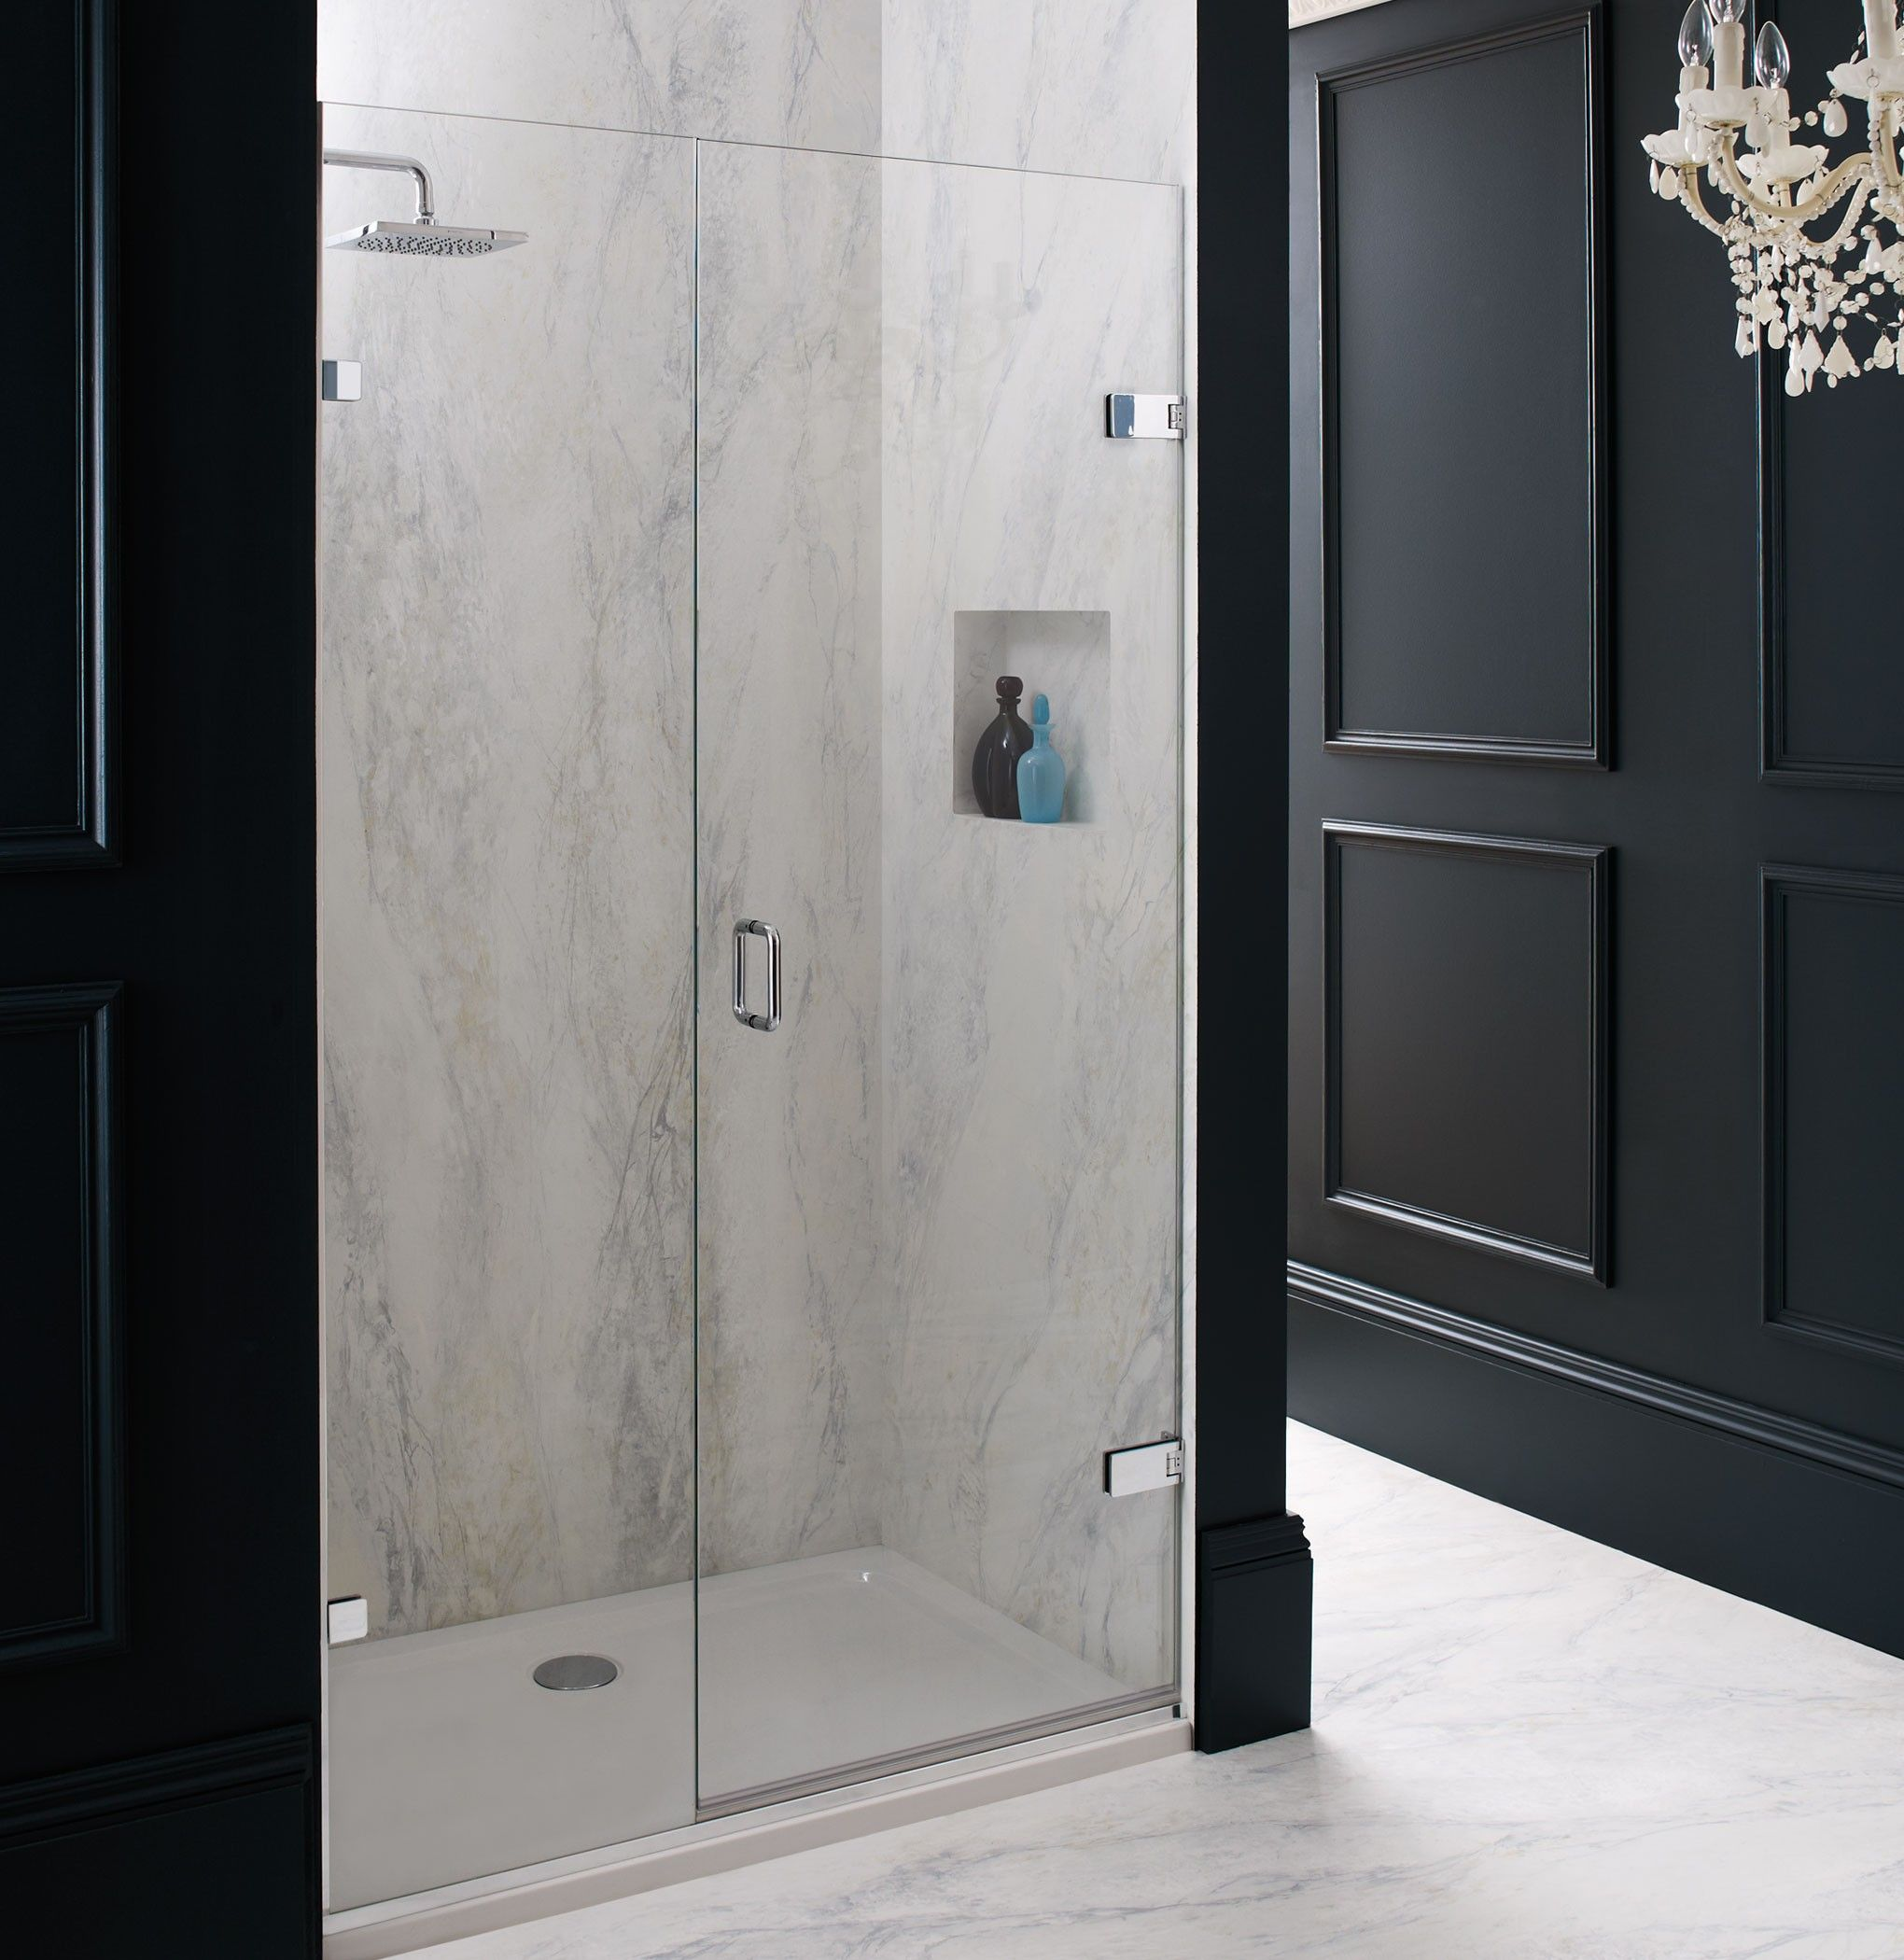 Merlyn 8 series sliding door amp inline panel - Majestic Rio Shower Screen